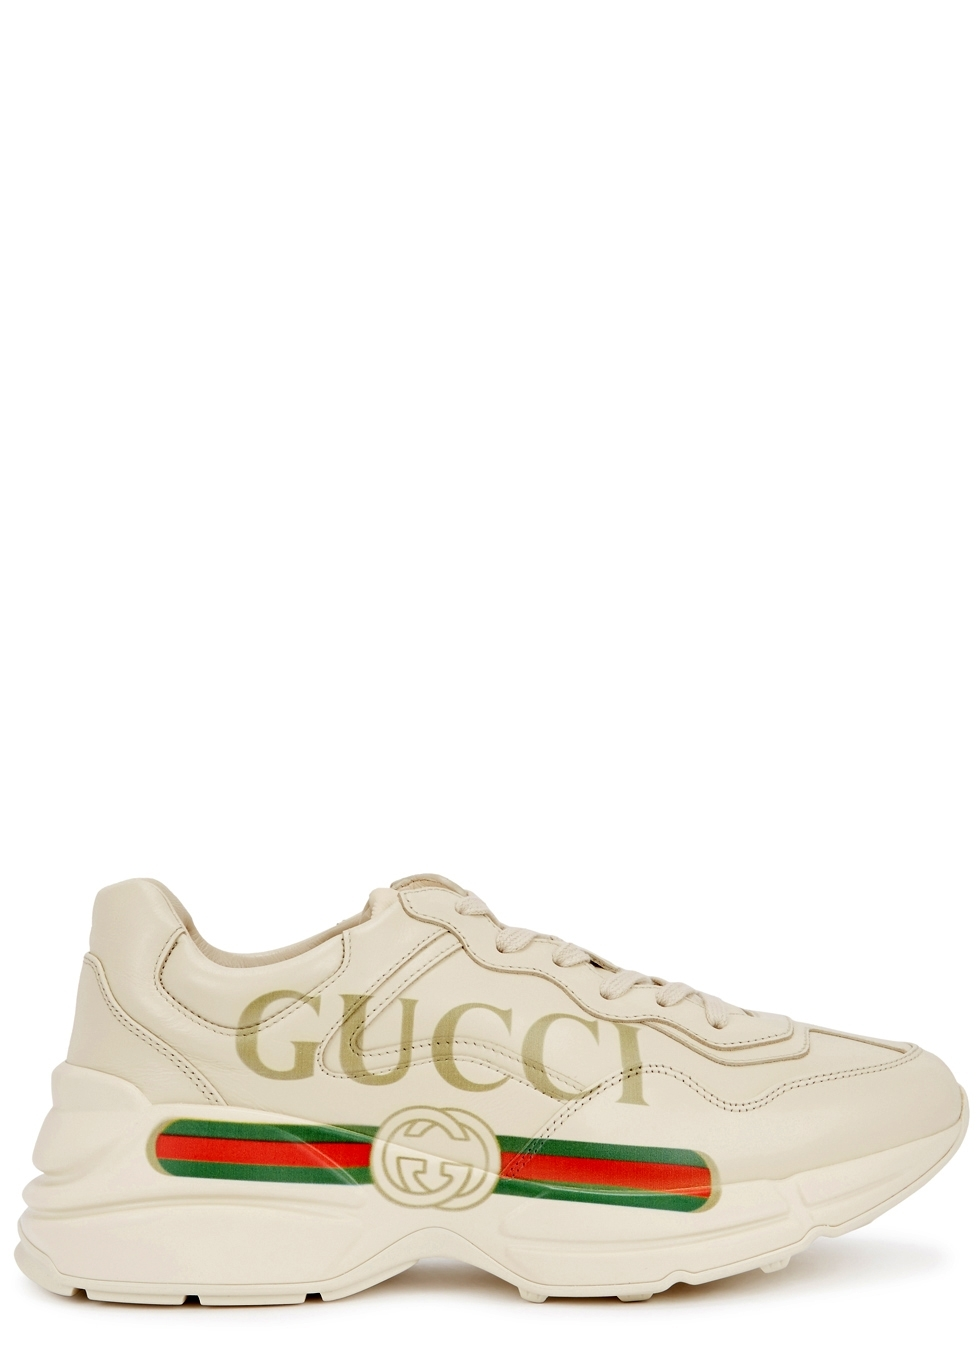 e77320f9a Gucci Trainers - Womens - Harvey Nichols